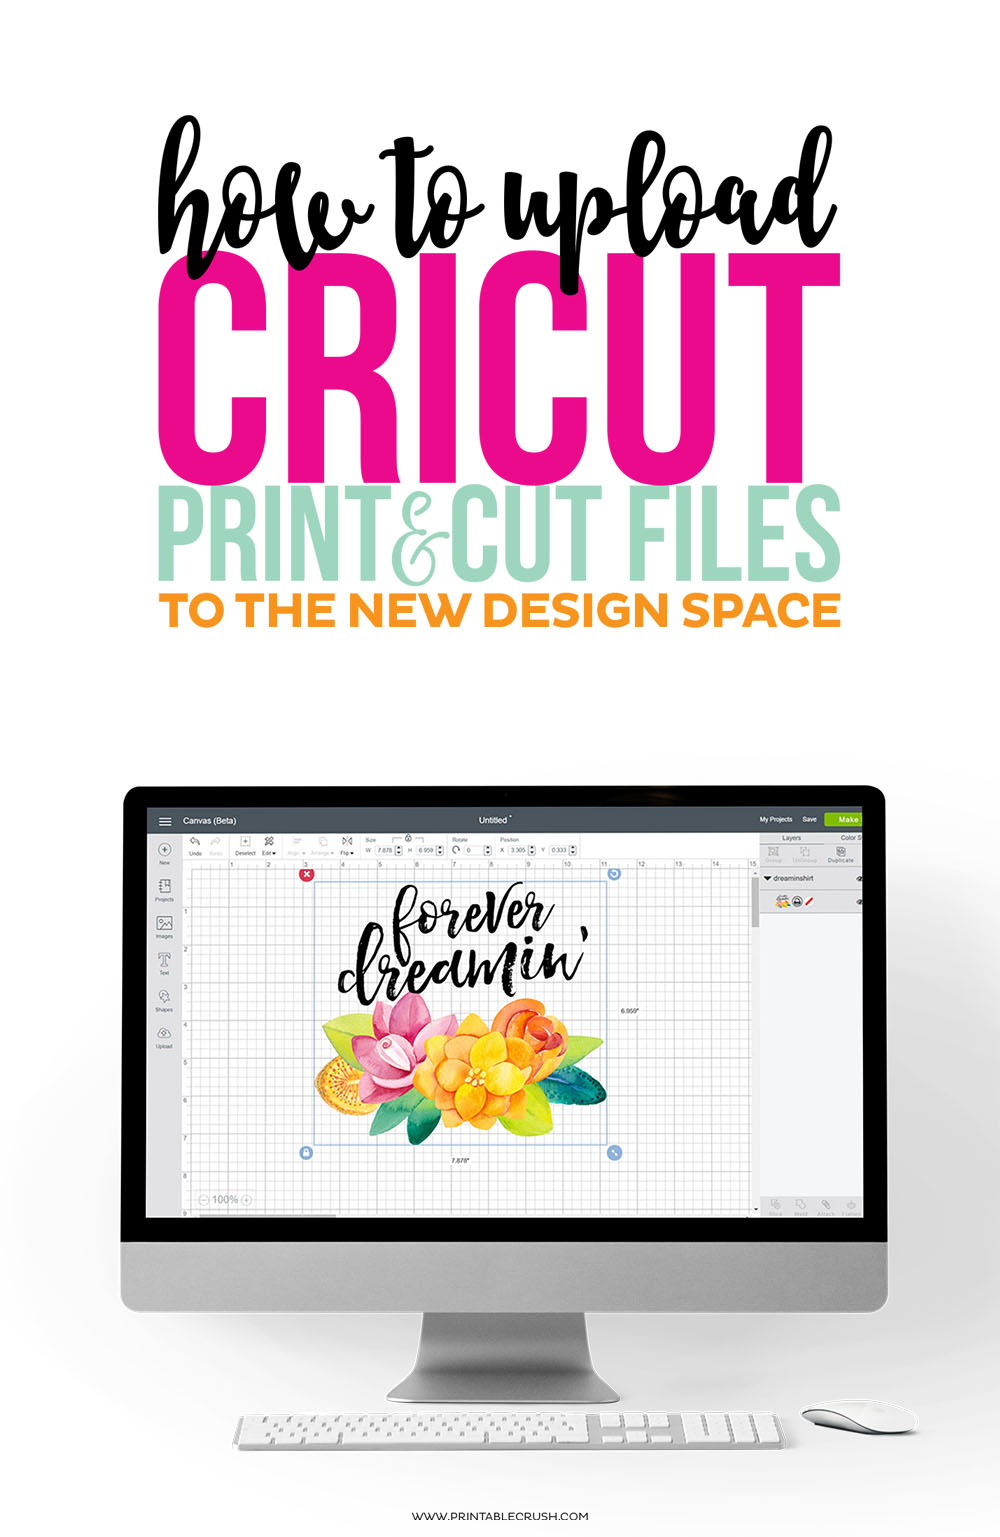 Learn how to How to Upload Cricut Print and Cut Files to Design Space using a PNG file we created in Adobe Photoshop.